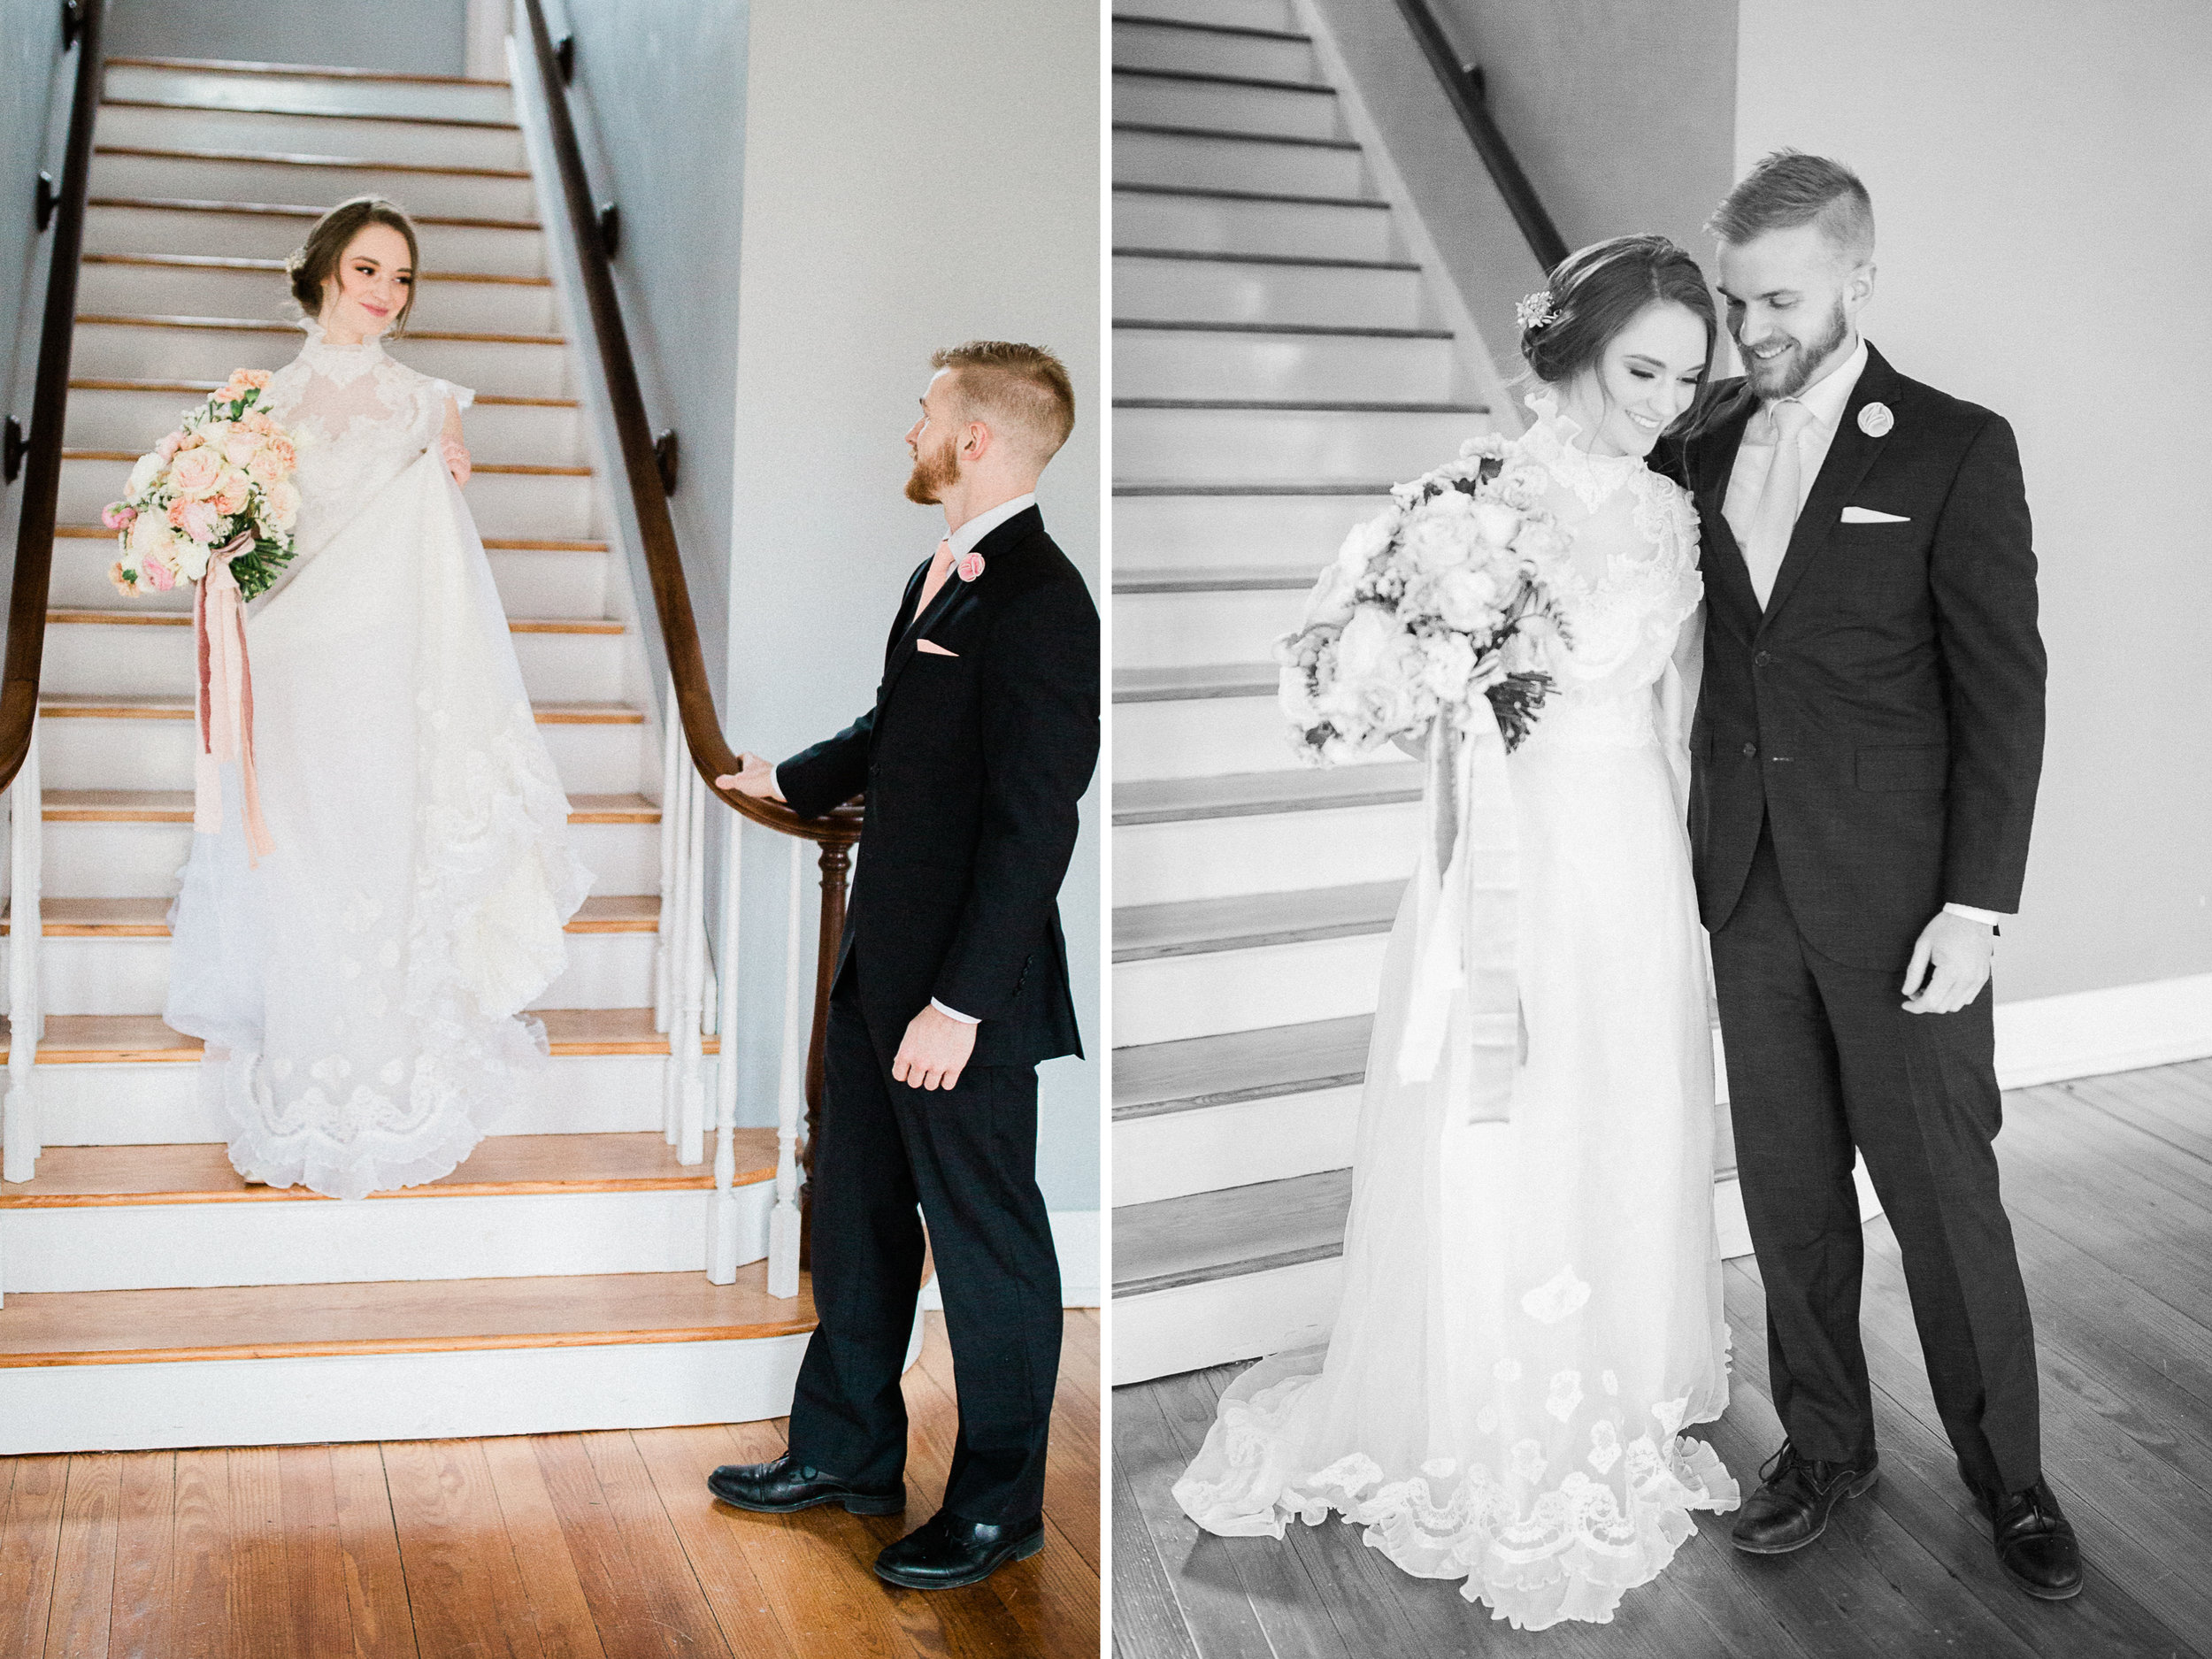 dorothy_louise_photography_old_stone_house_st._charles_bridal_inspiration6.jpg